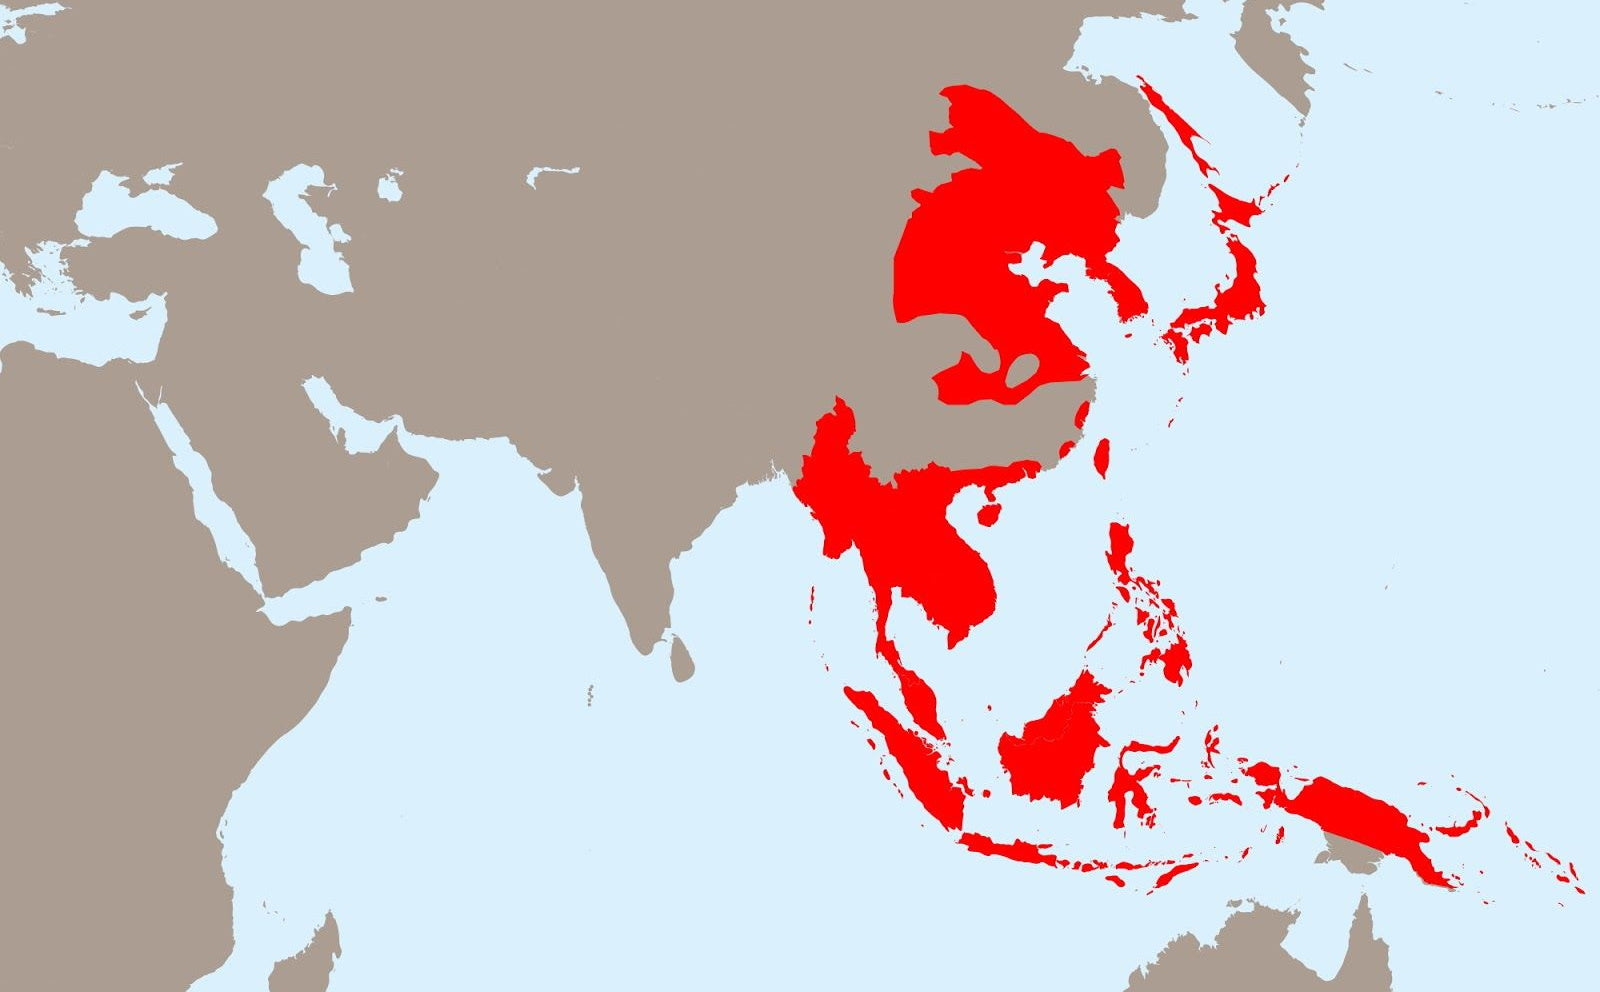 The Japanese Empire at its greatest extent. Manchuria is shown in red in the top left.